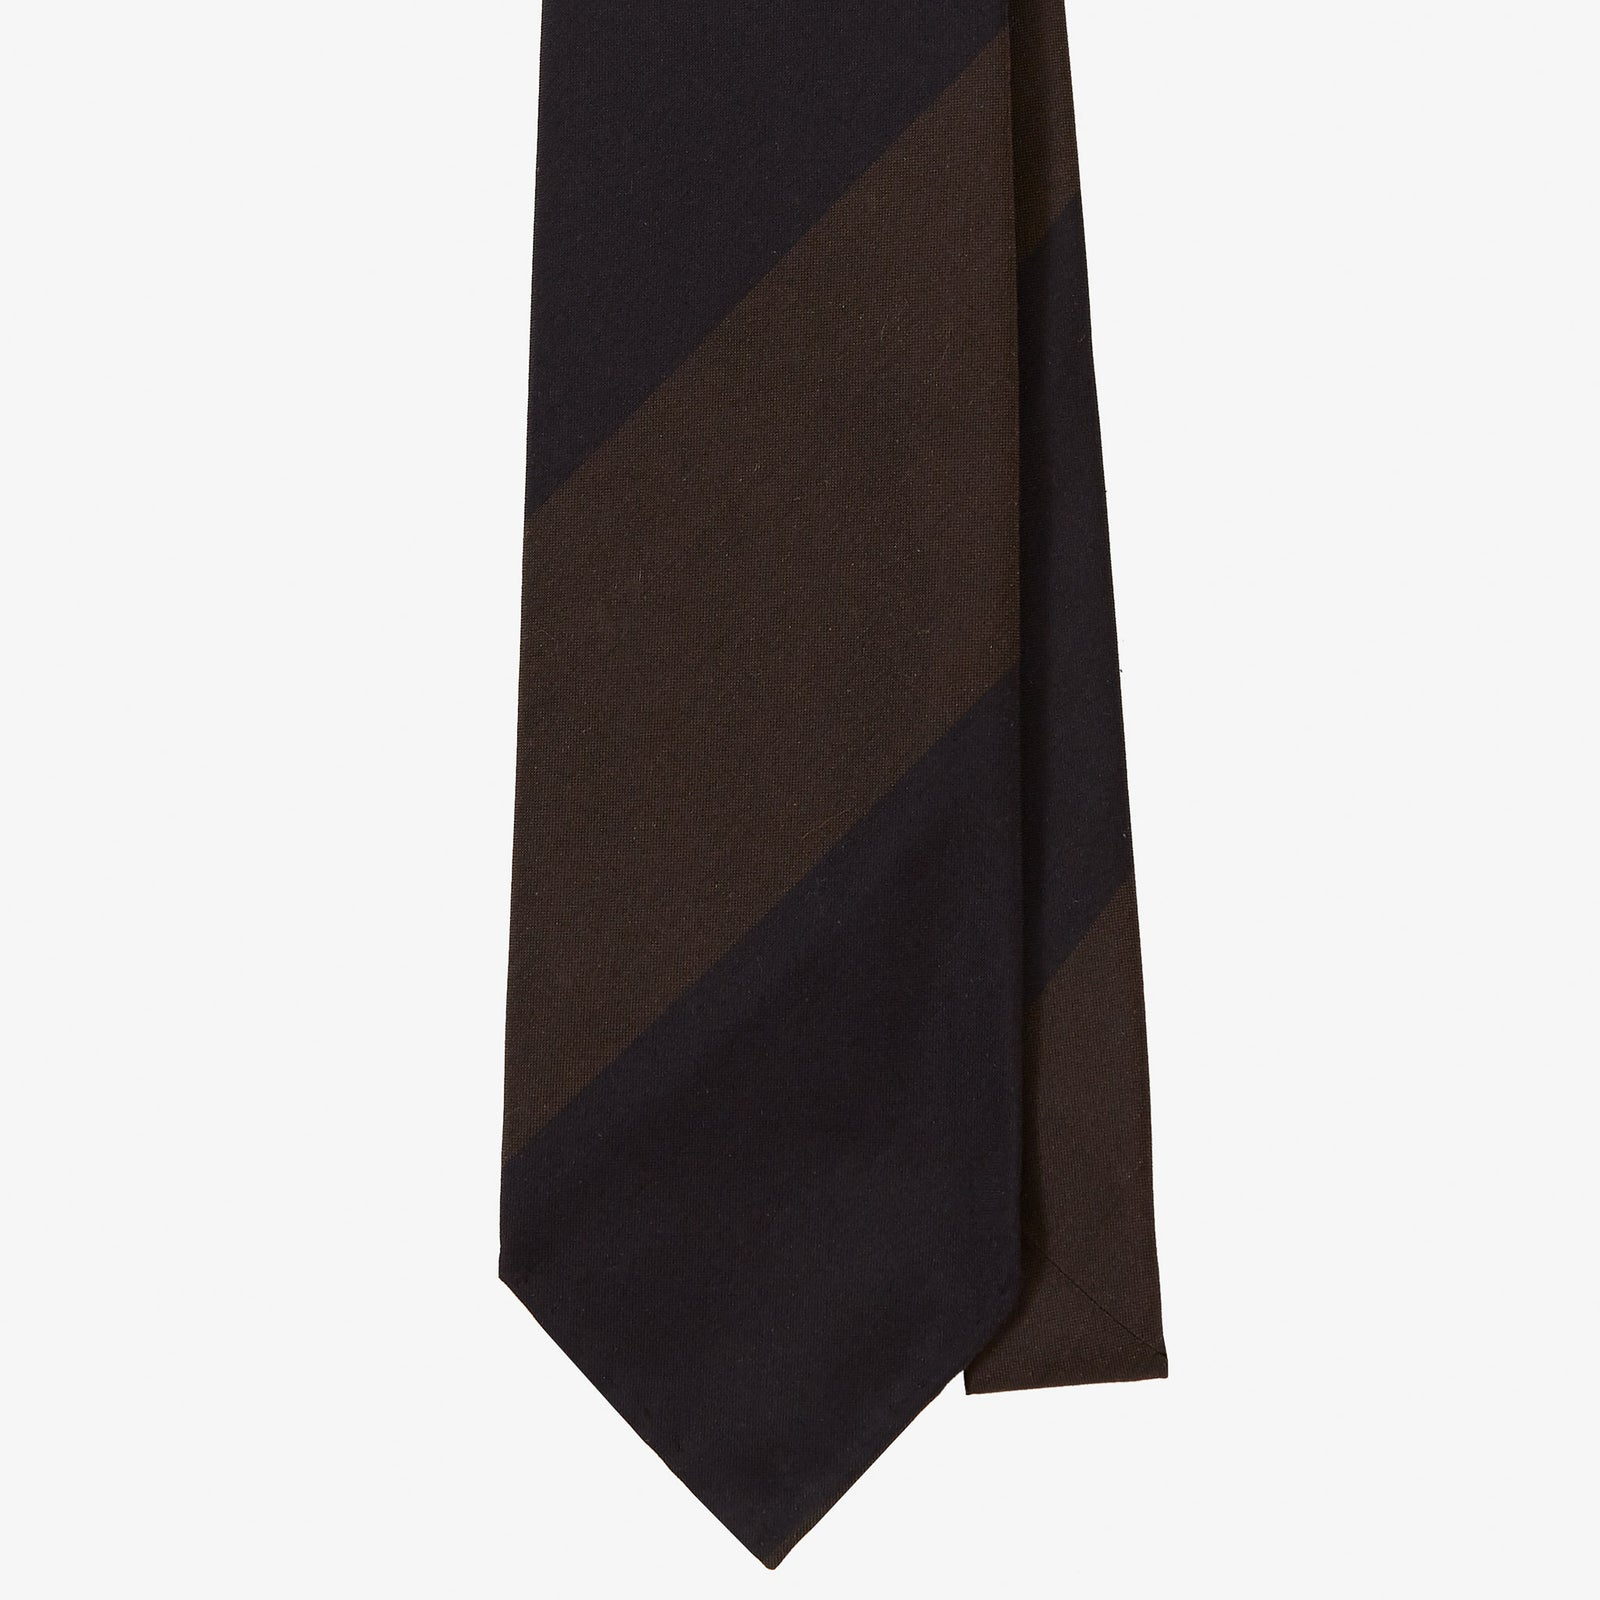 Dry Silk Tie Brown Navy Block Stripe